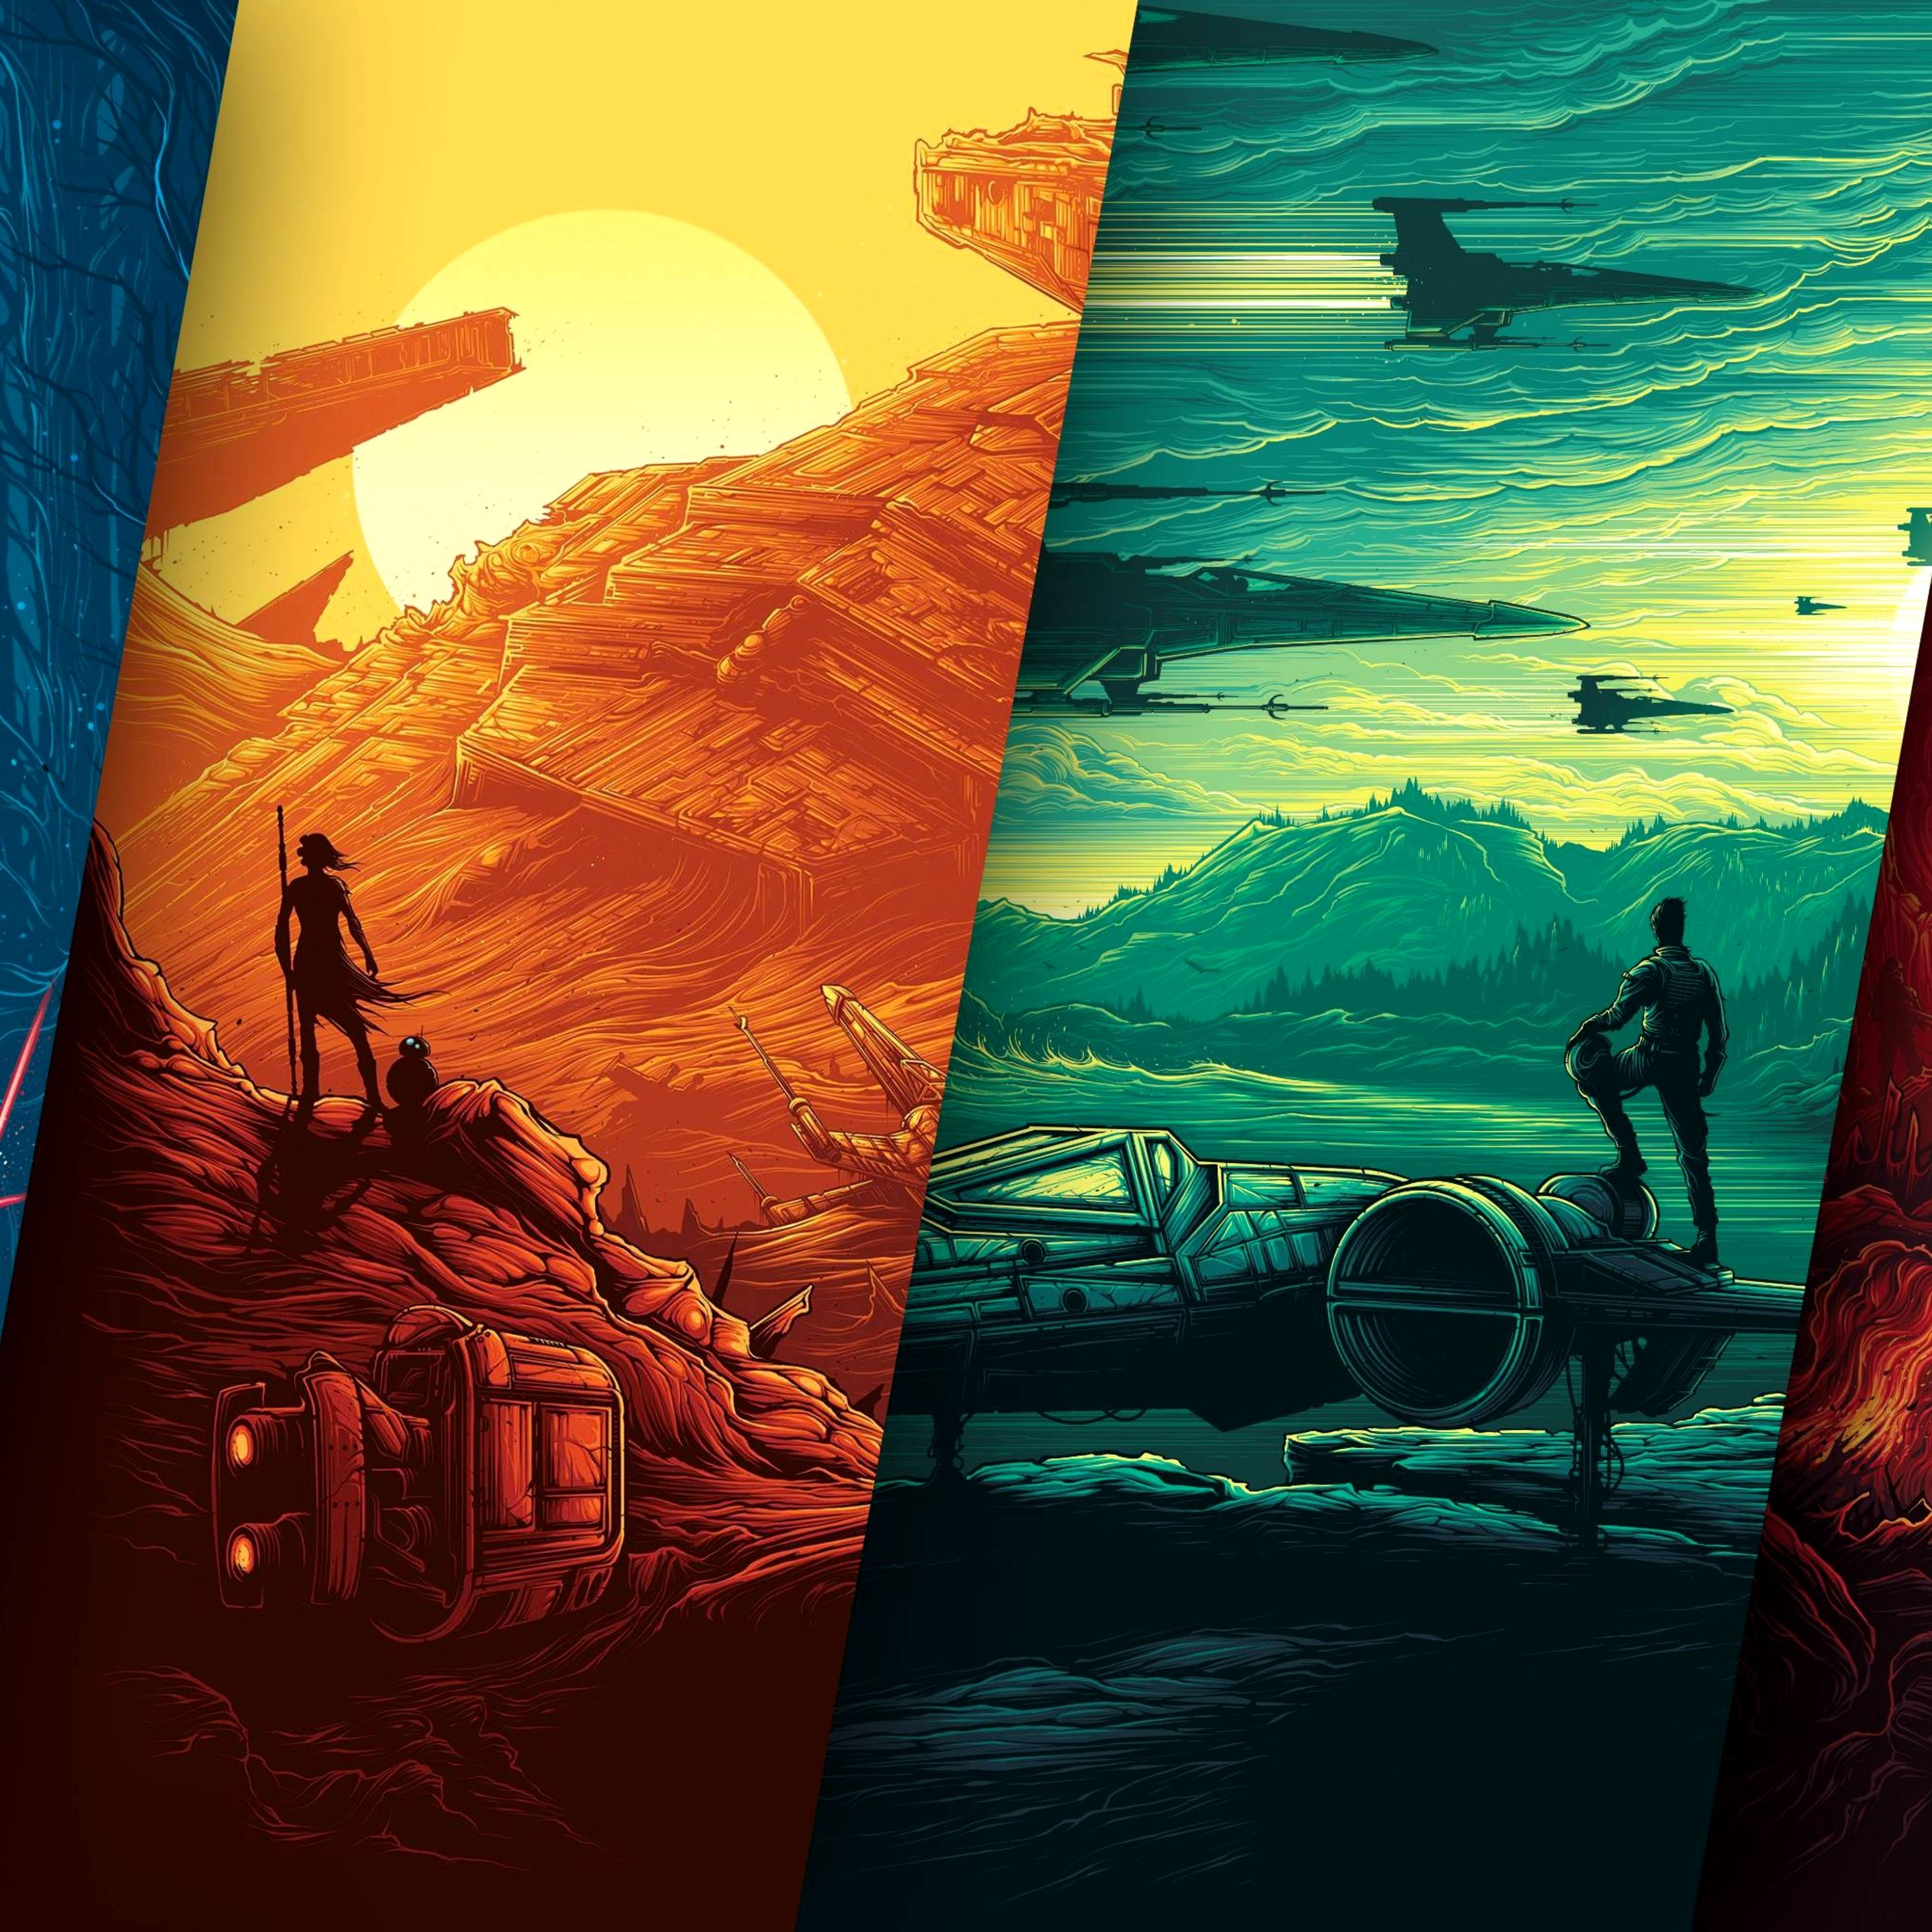 Wallpaper 4K Star Wars Ideas di 2020